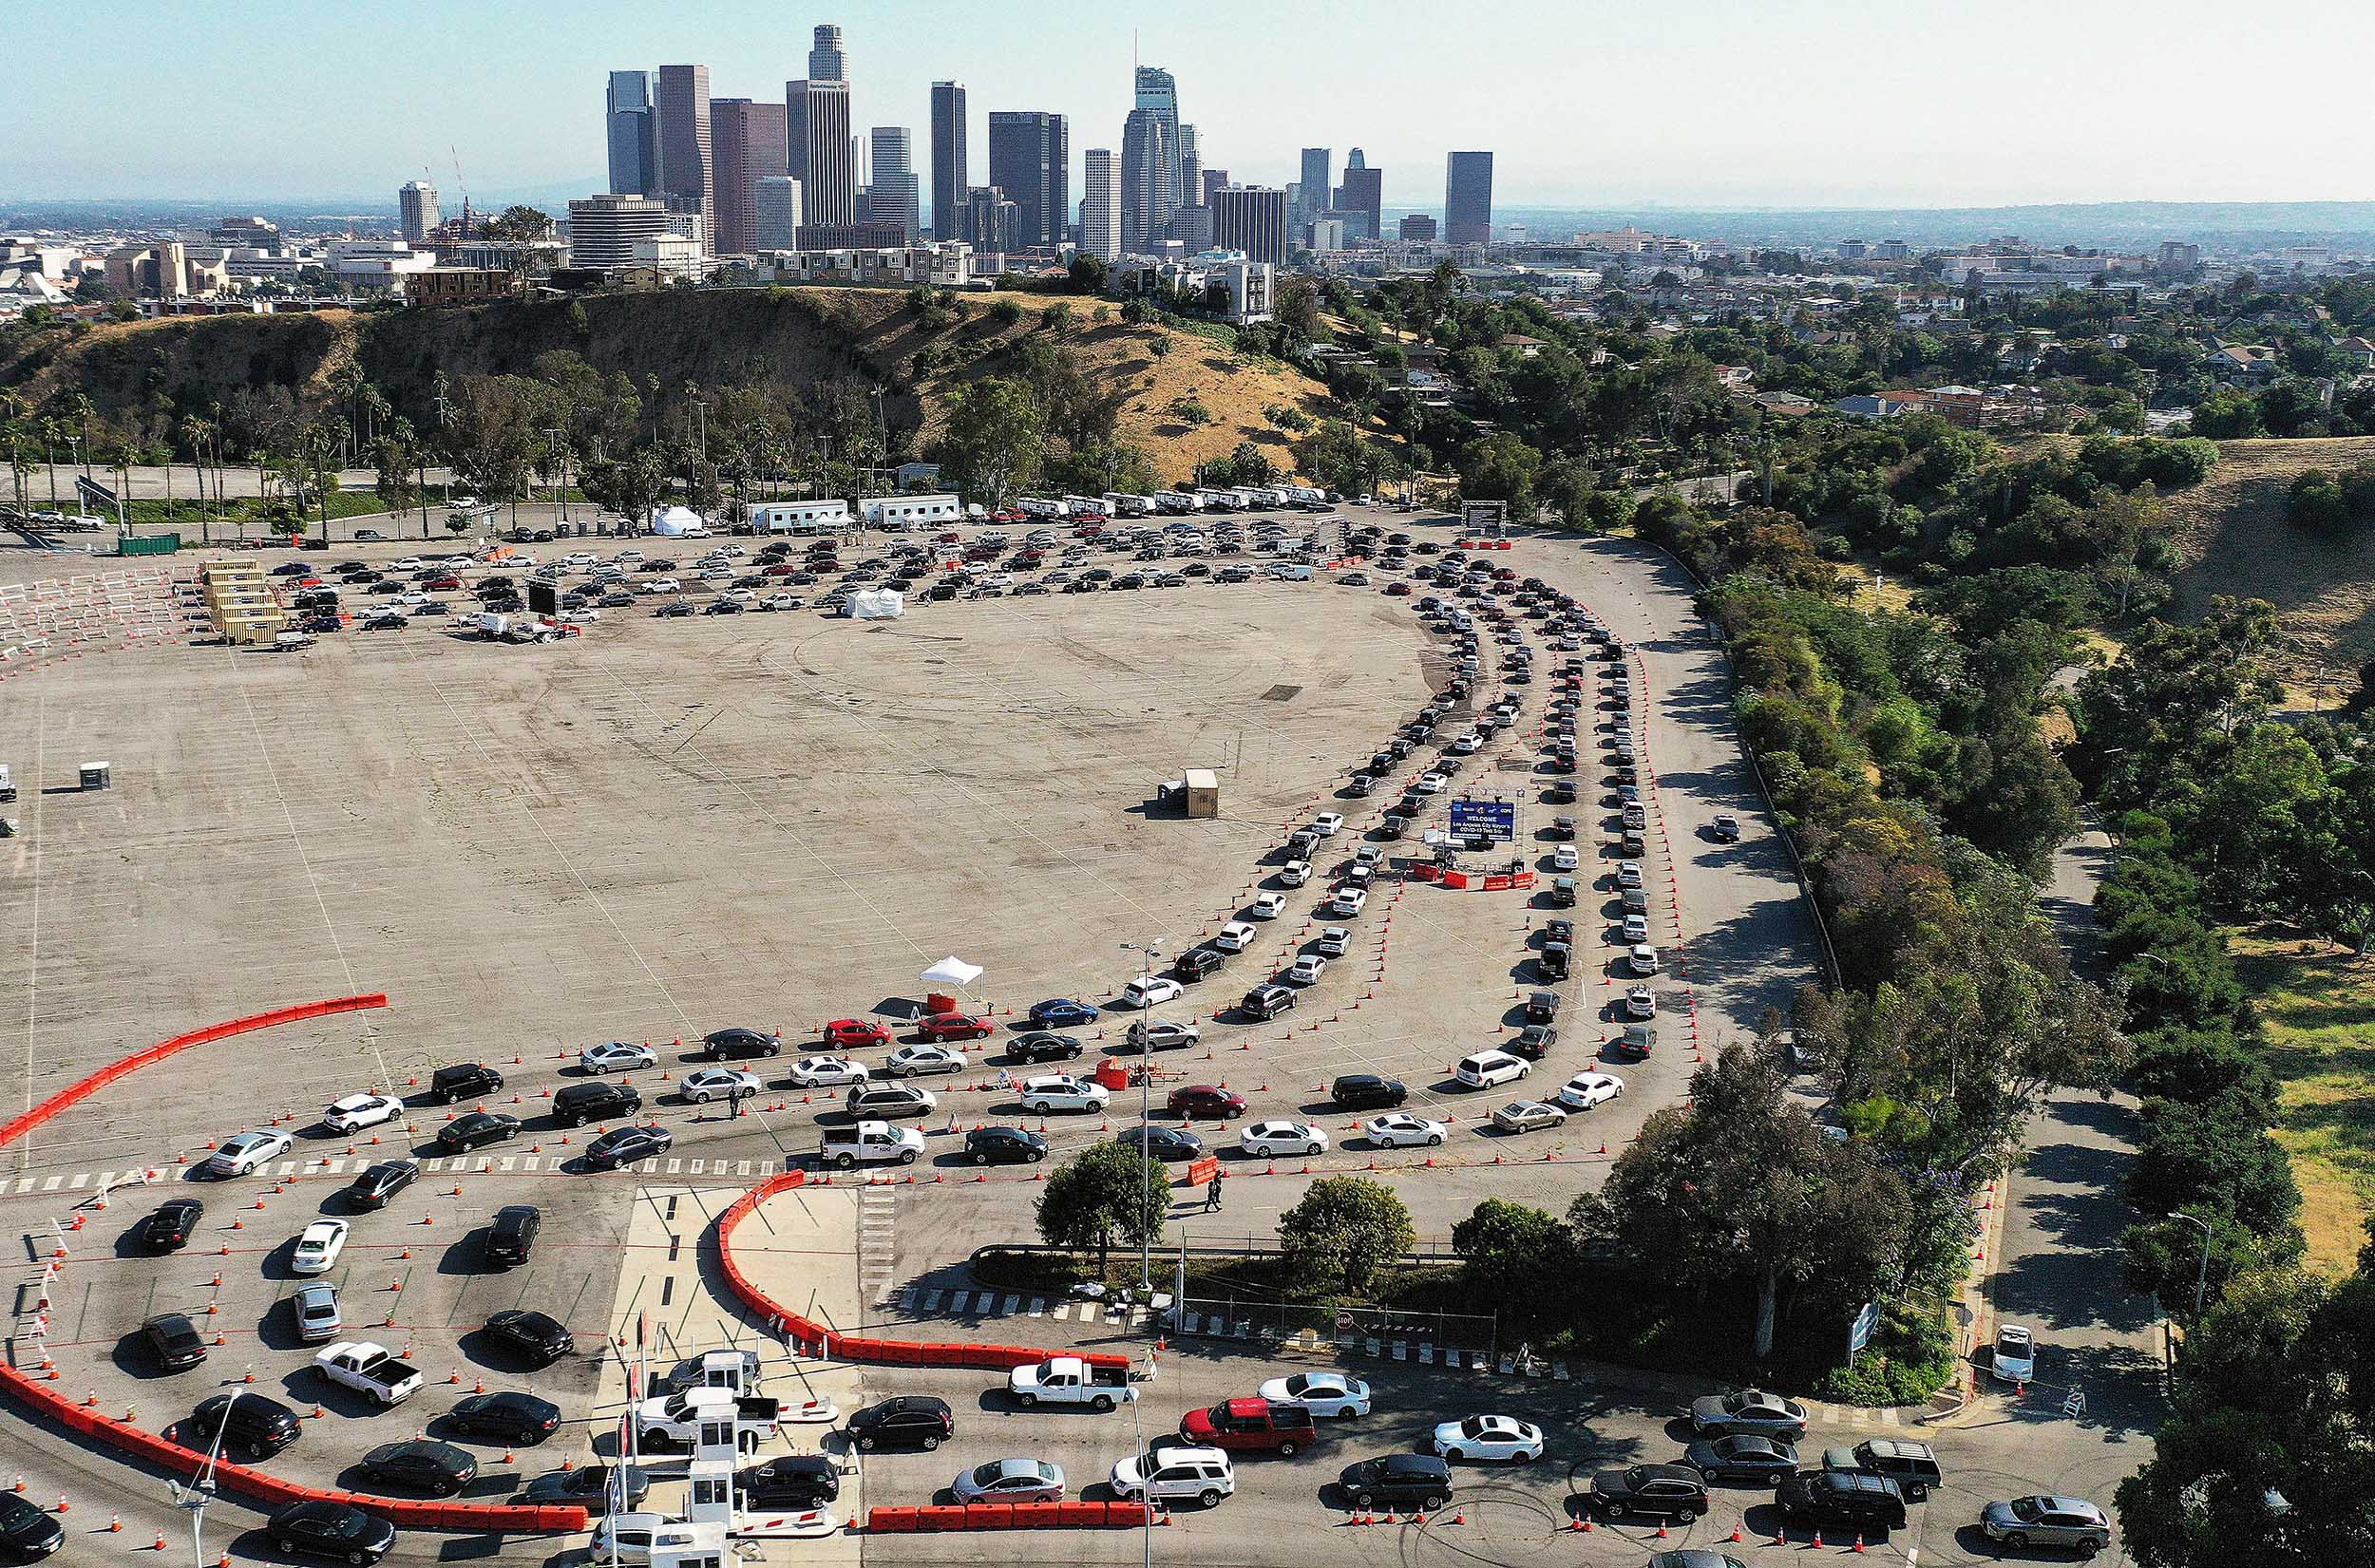 An aerial view of people in cars lined up to be tested for COVID-19 at Dodger Stadium amid the coronavirus pandemic on June 26, in Los Angeles, California.